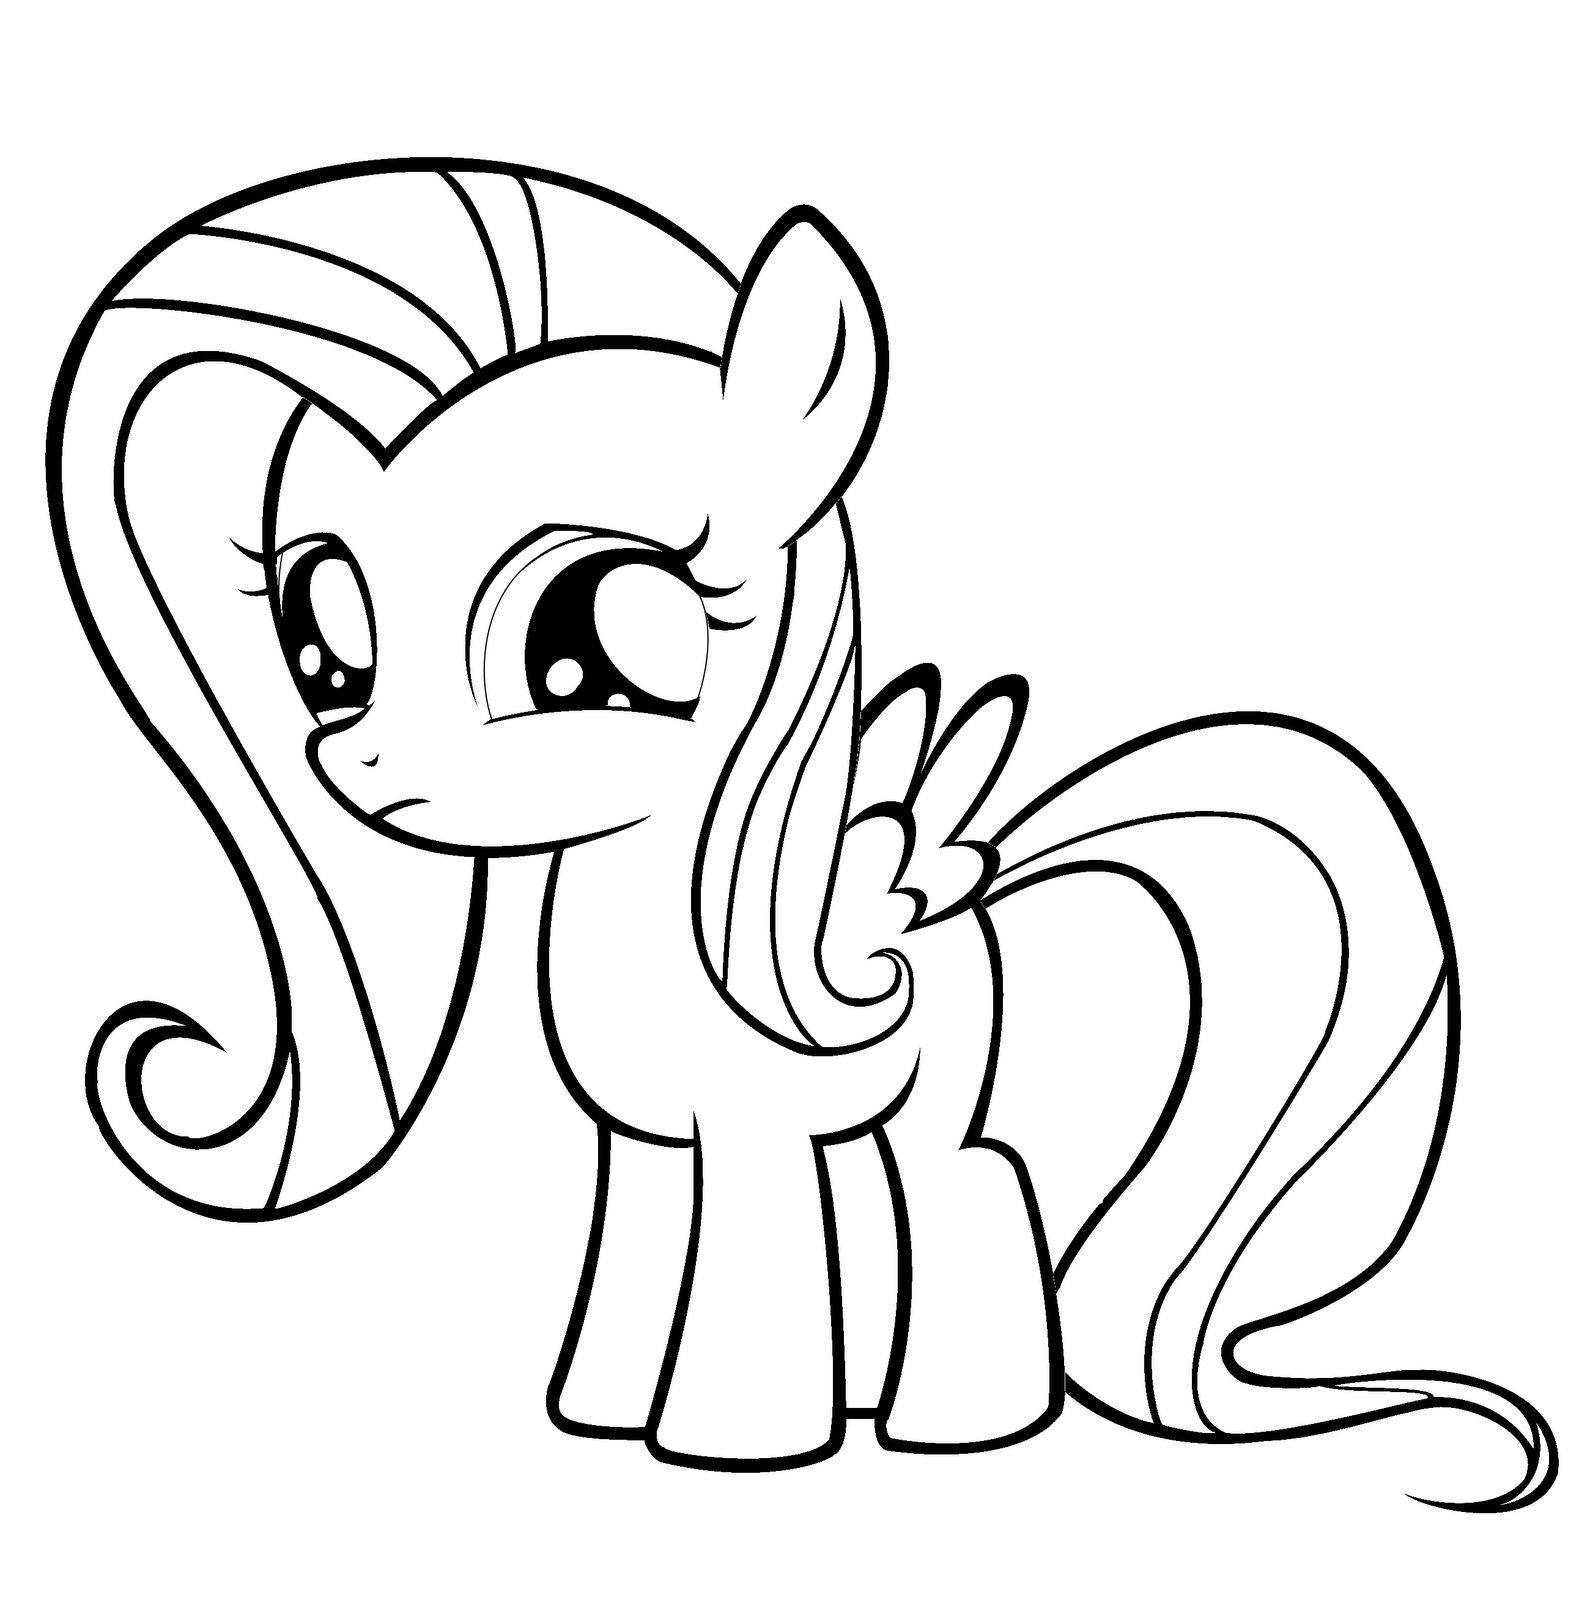 my little pony coloring pages free printable my little pony coloring page mlp scootaloo kids pony coloring free printable little my pages